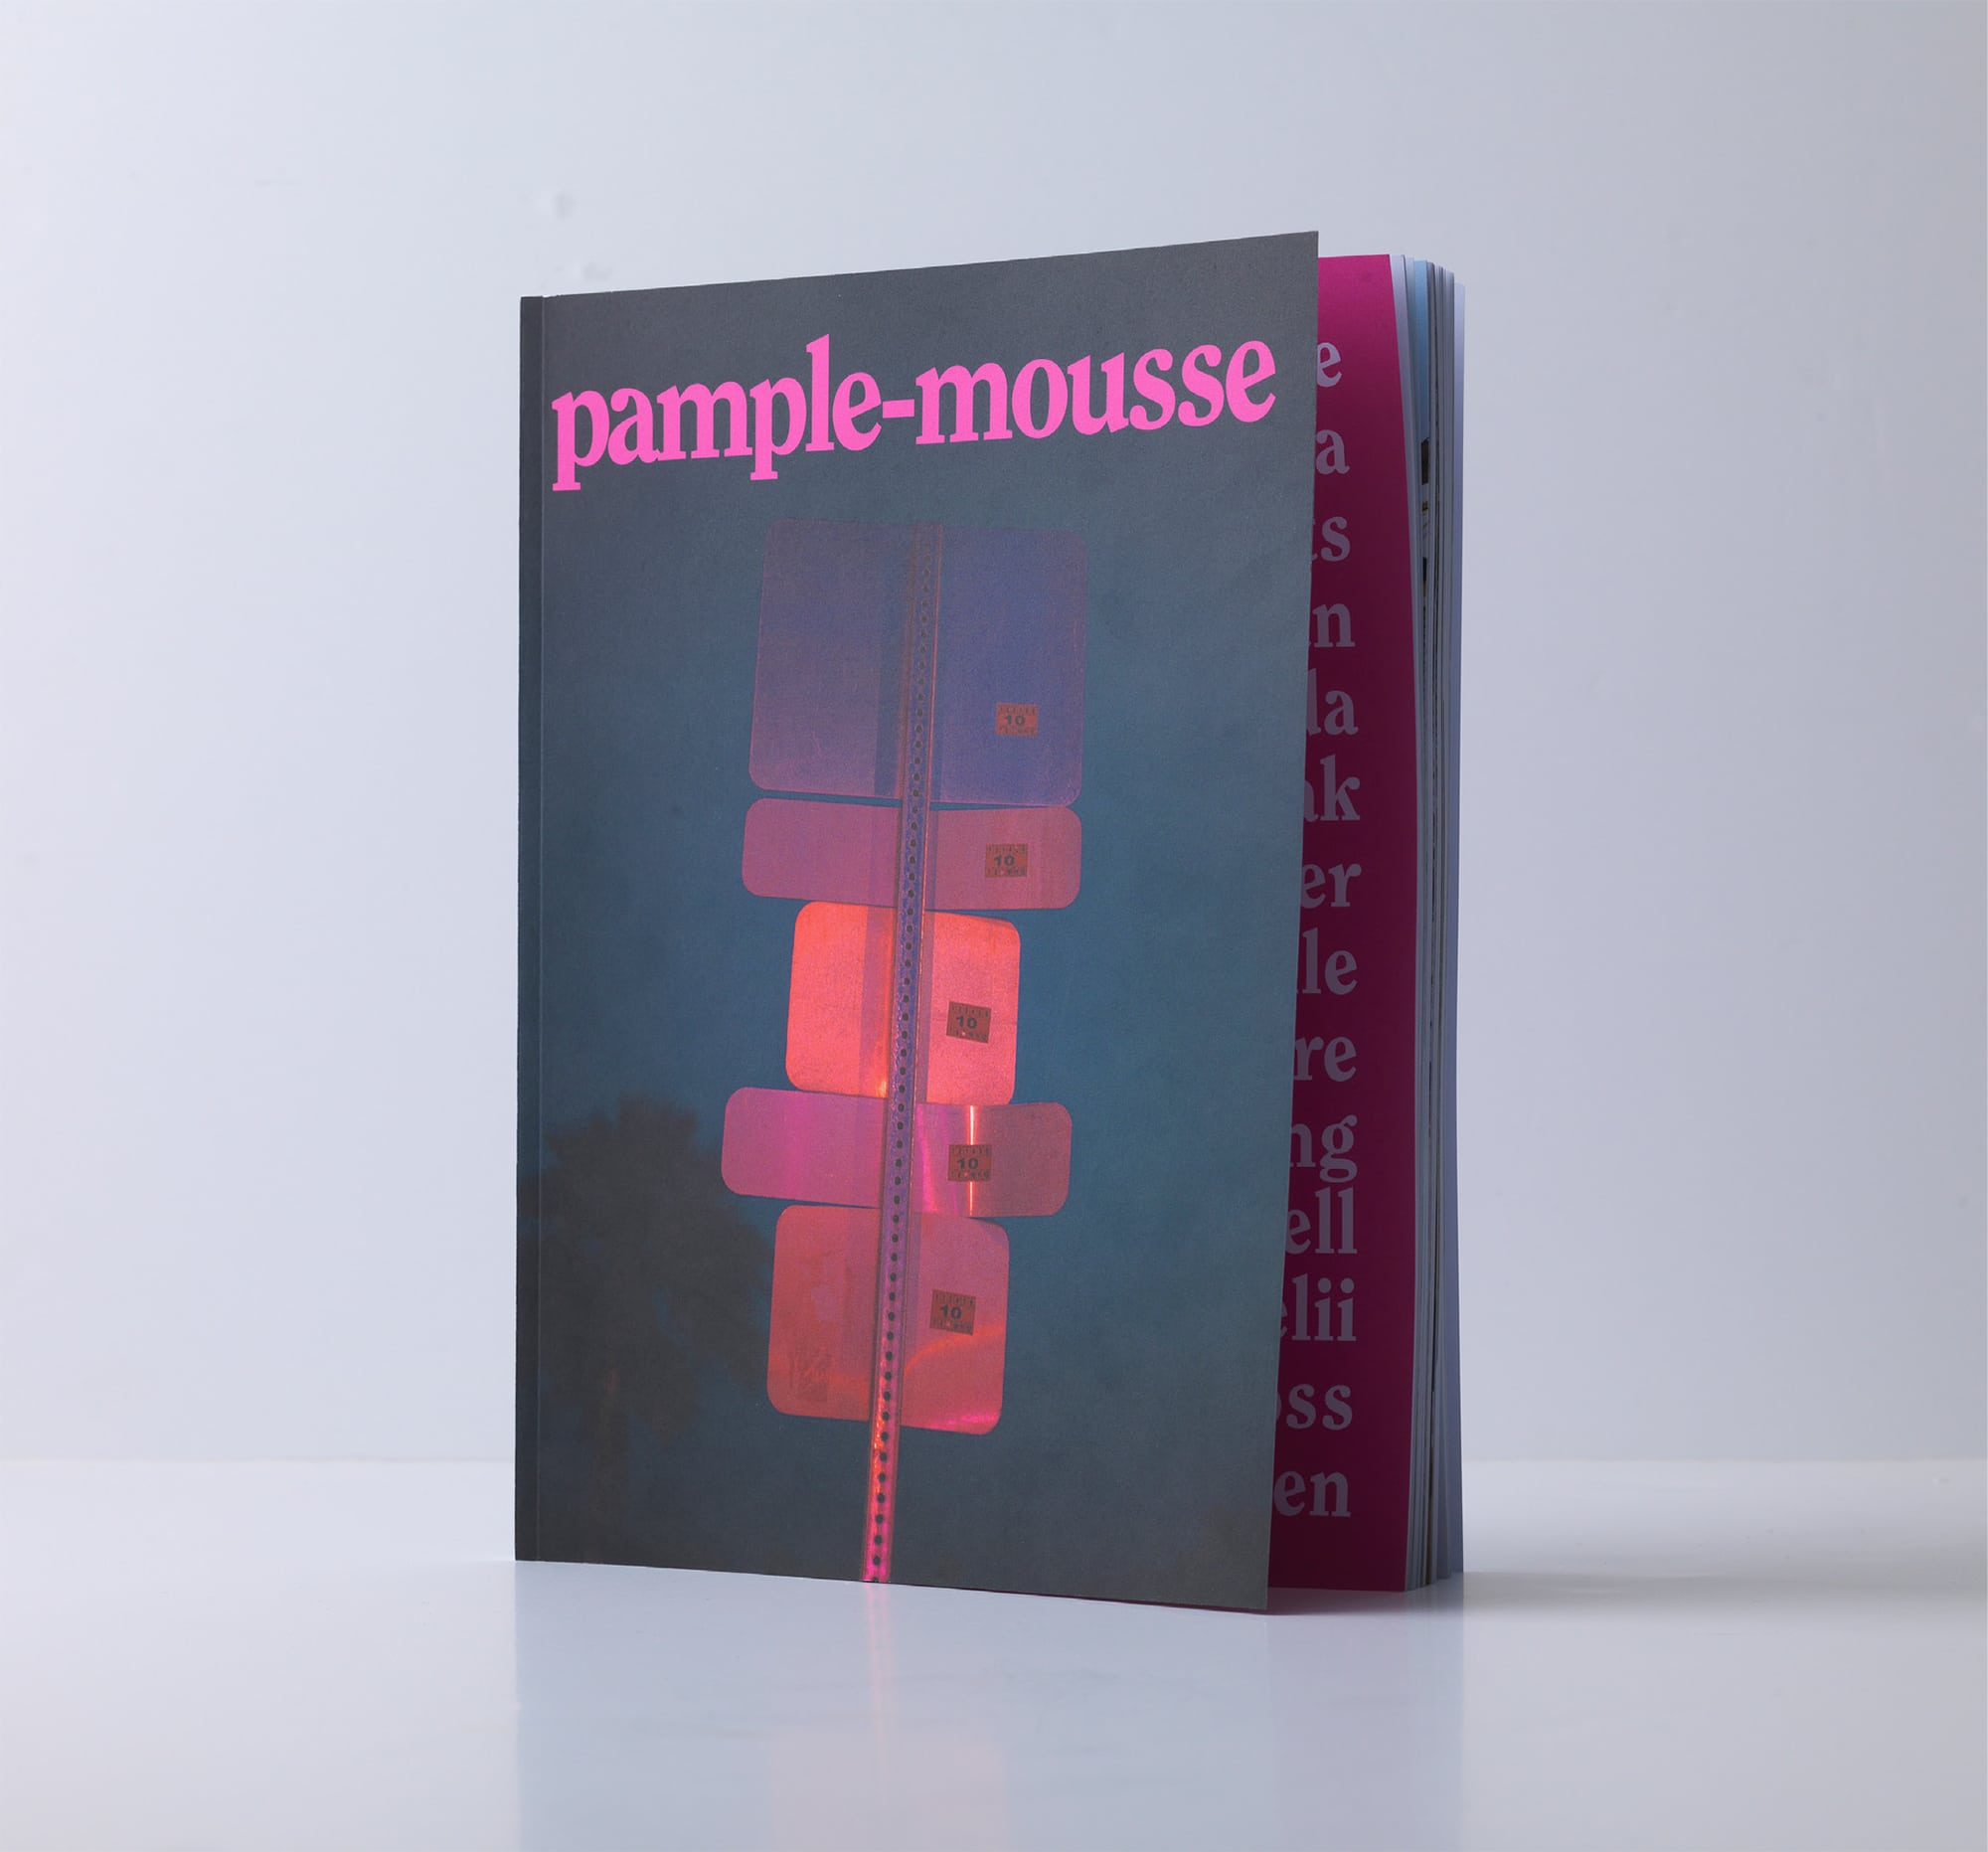 Alumni collaborate on Pample-mousse magazine